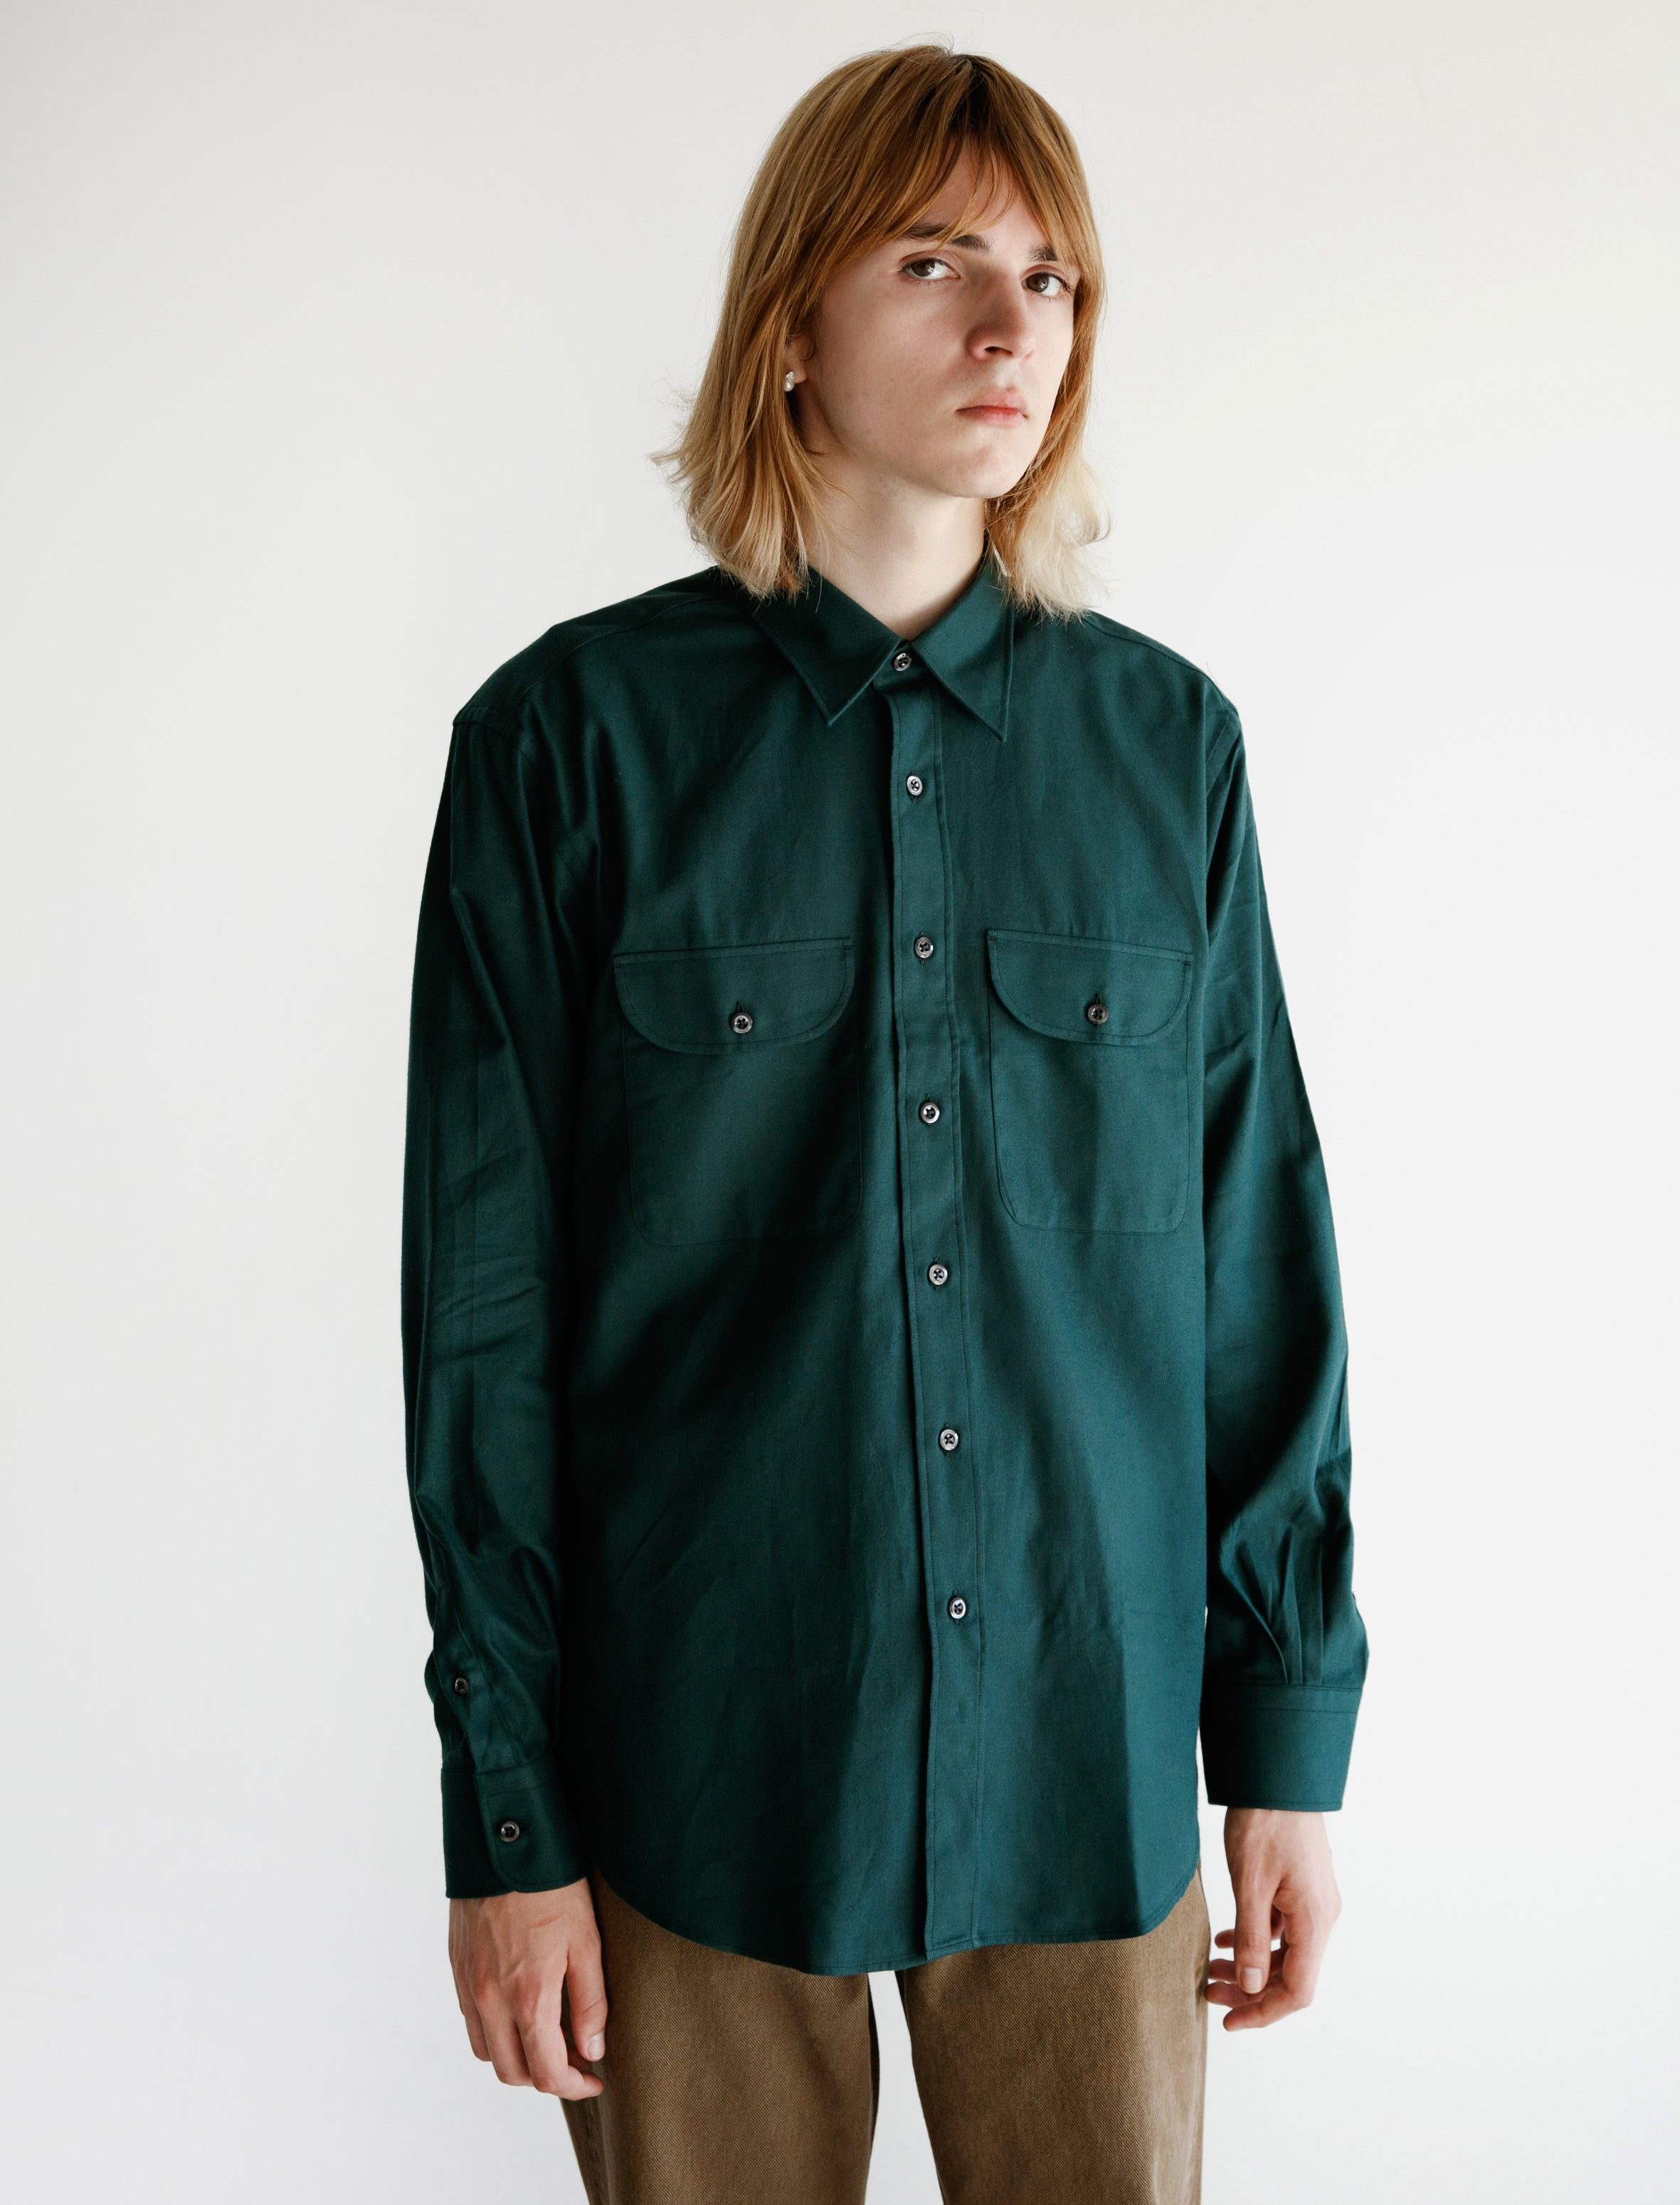 Cobra S.C. Double Pocket Shirt Jag Green Flannel